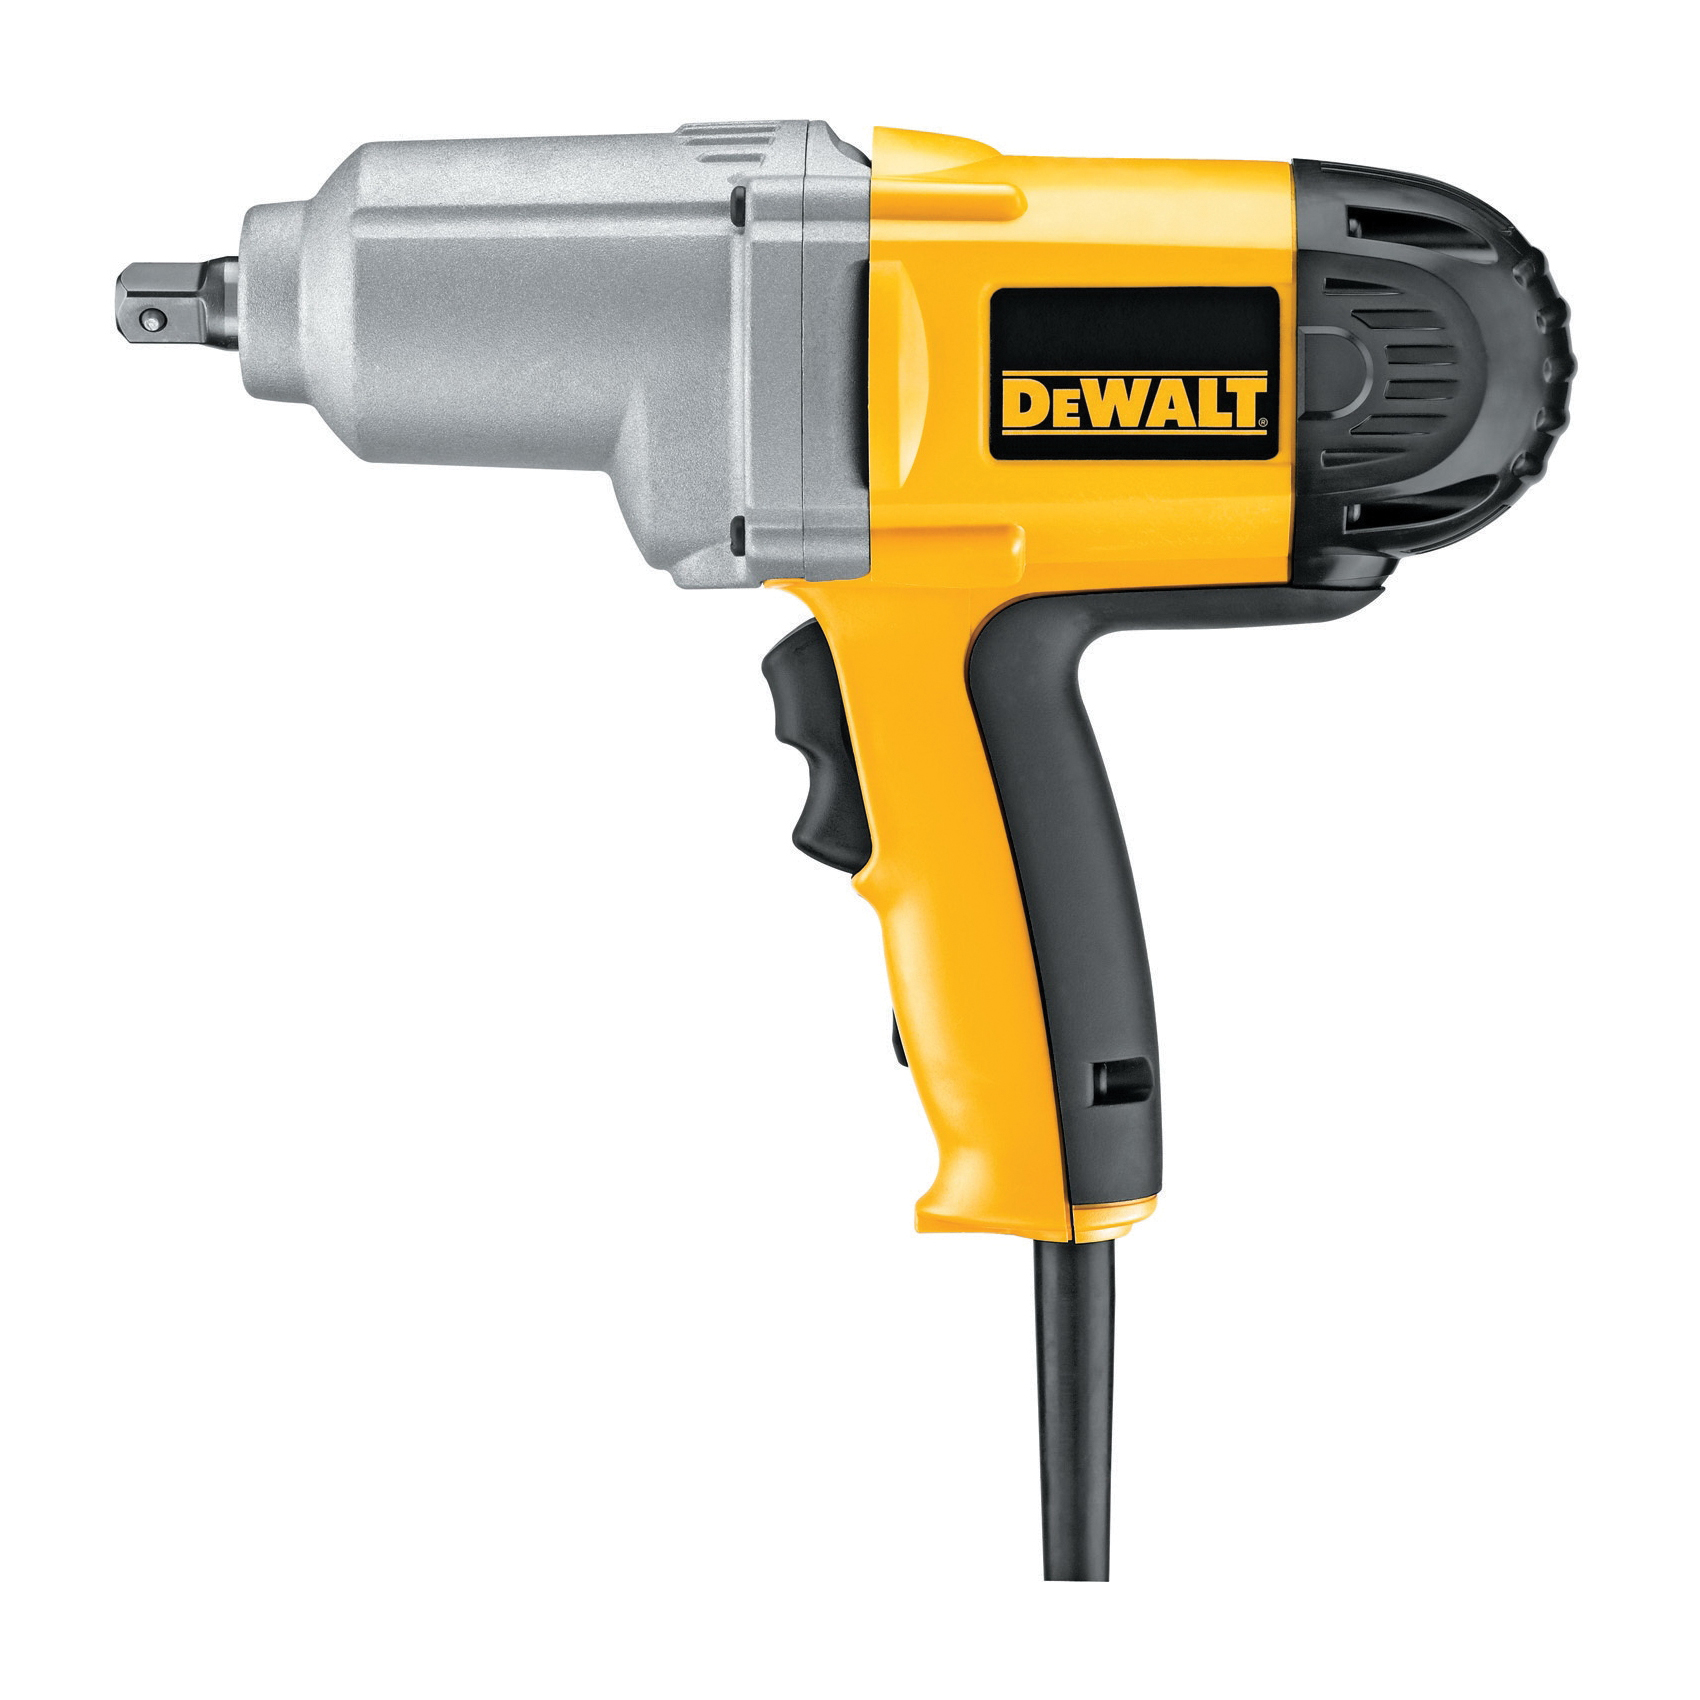 DeWALT® DW292 Corded Impact Wrench With Detent Pin Anvil, 1/2 in Straight Drive, 2700 bpm, 345 ft-lb Torque, 120 VAC, 11-1/4 in OAL